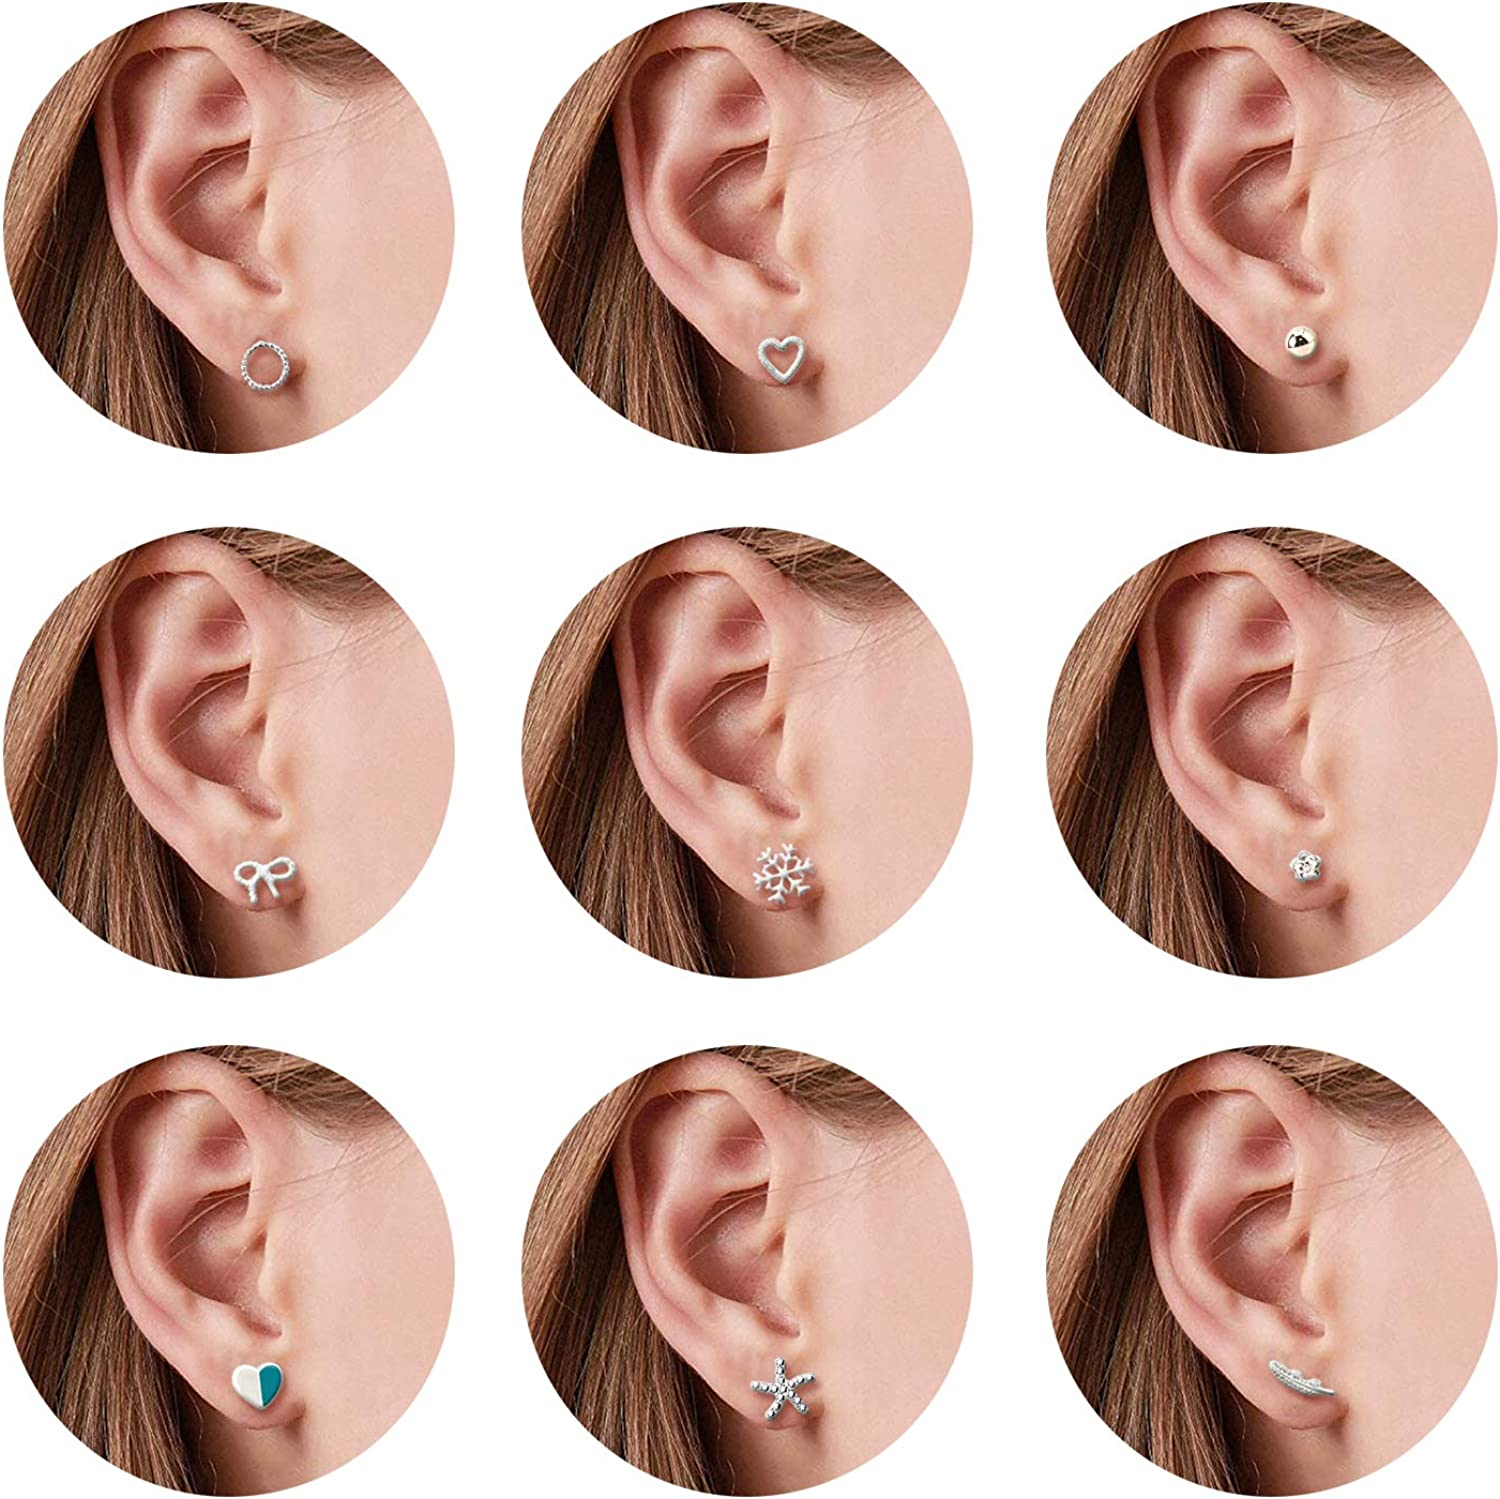 Stud Earrings Set Crystal Pearl Round Circle Heart Cubic Zirconia Geometric Ball Hypoallergenic Earring Set Charm Trendy Piercing Jewelry Gift for Women Girls Teens Lady,30 Pairs